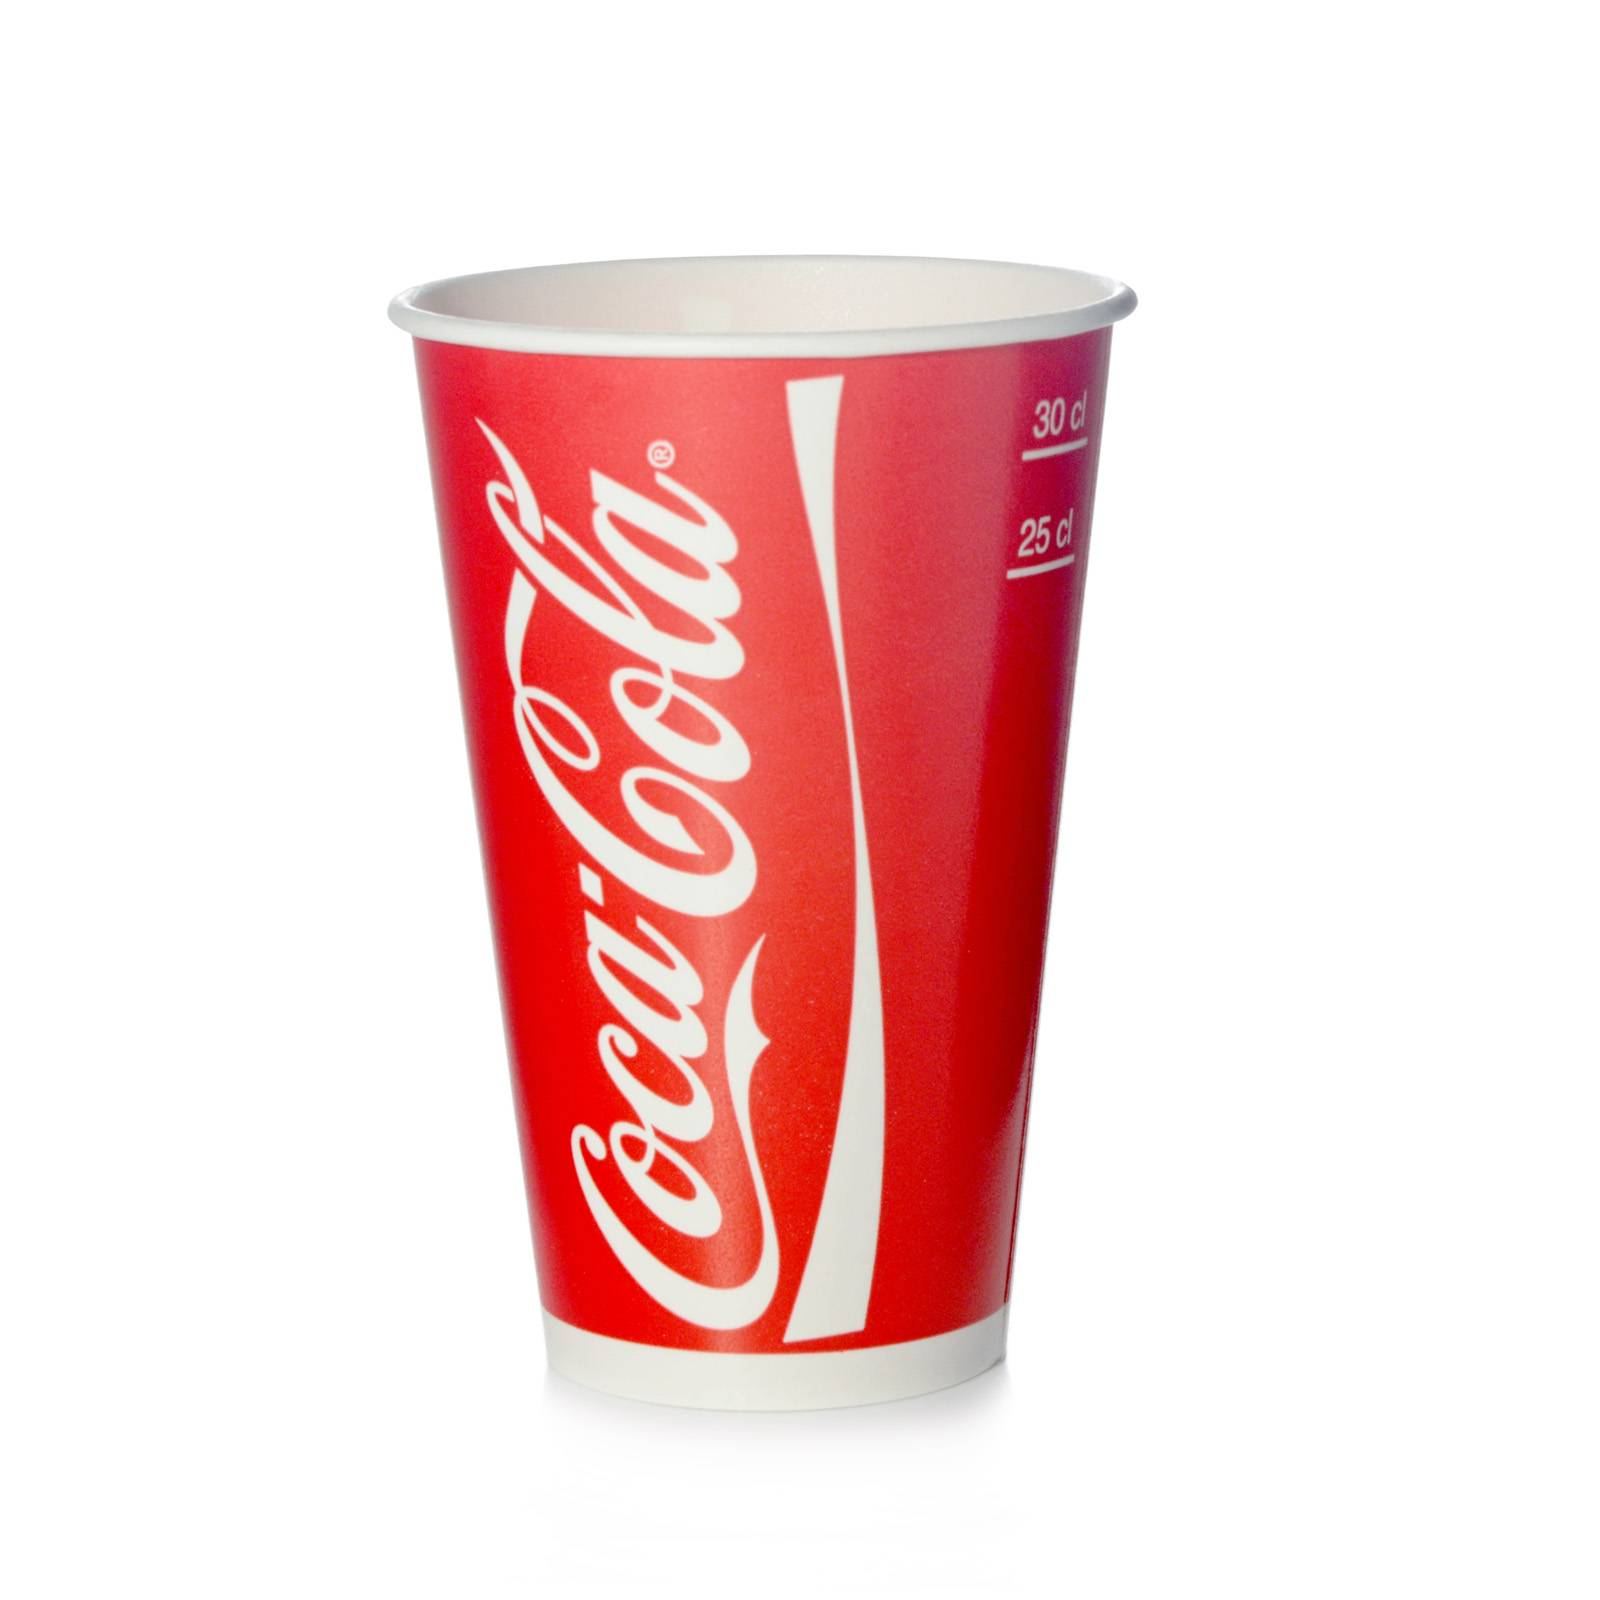 coca cola becher 0 25l 0 3l eichstrich colabecher 250ml 300ml coke 2000 stk ebay. Black Bedroom Furniture Sets. Home Design Ideas